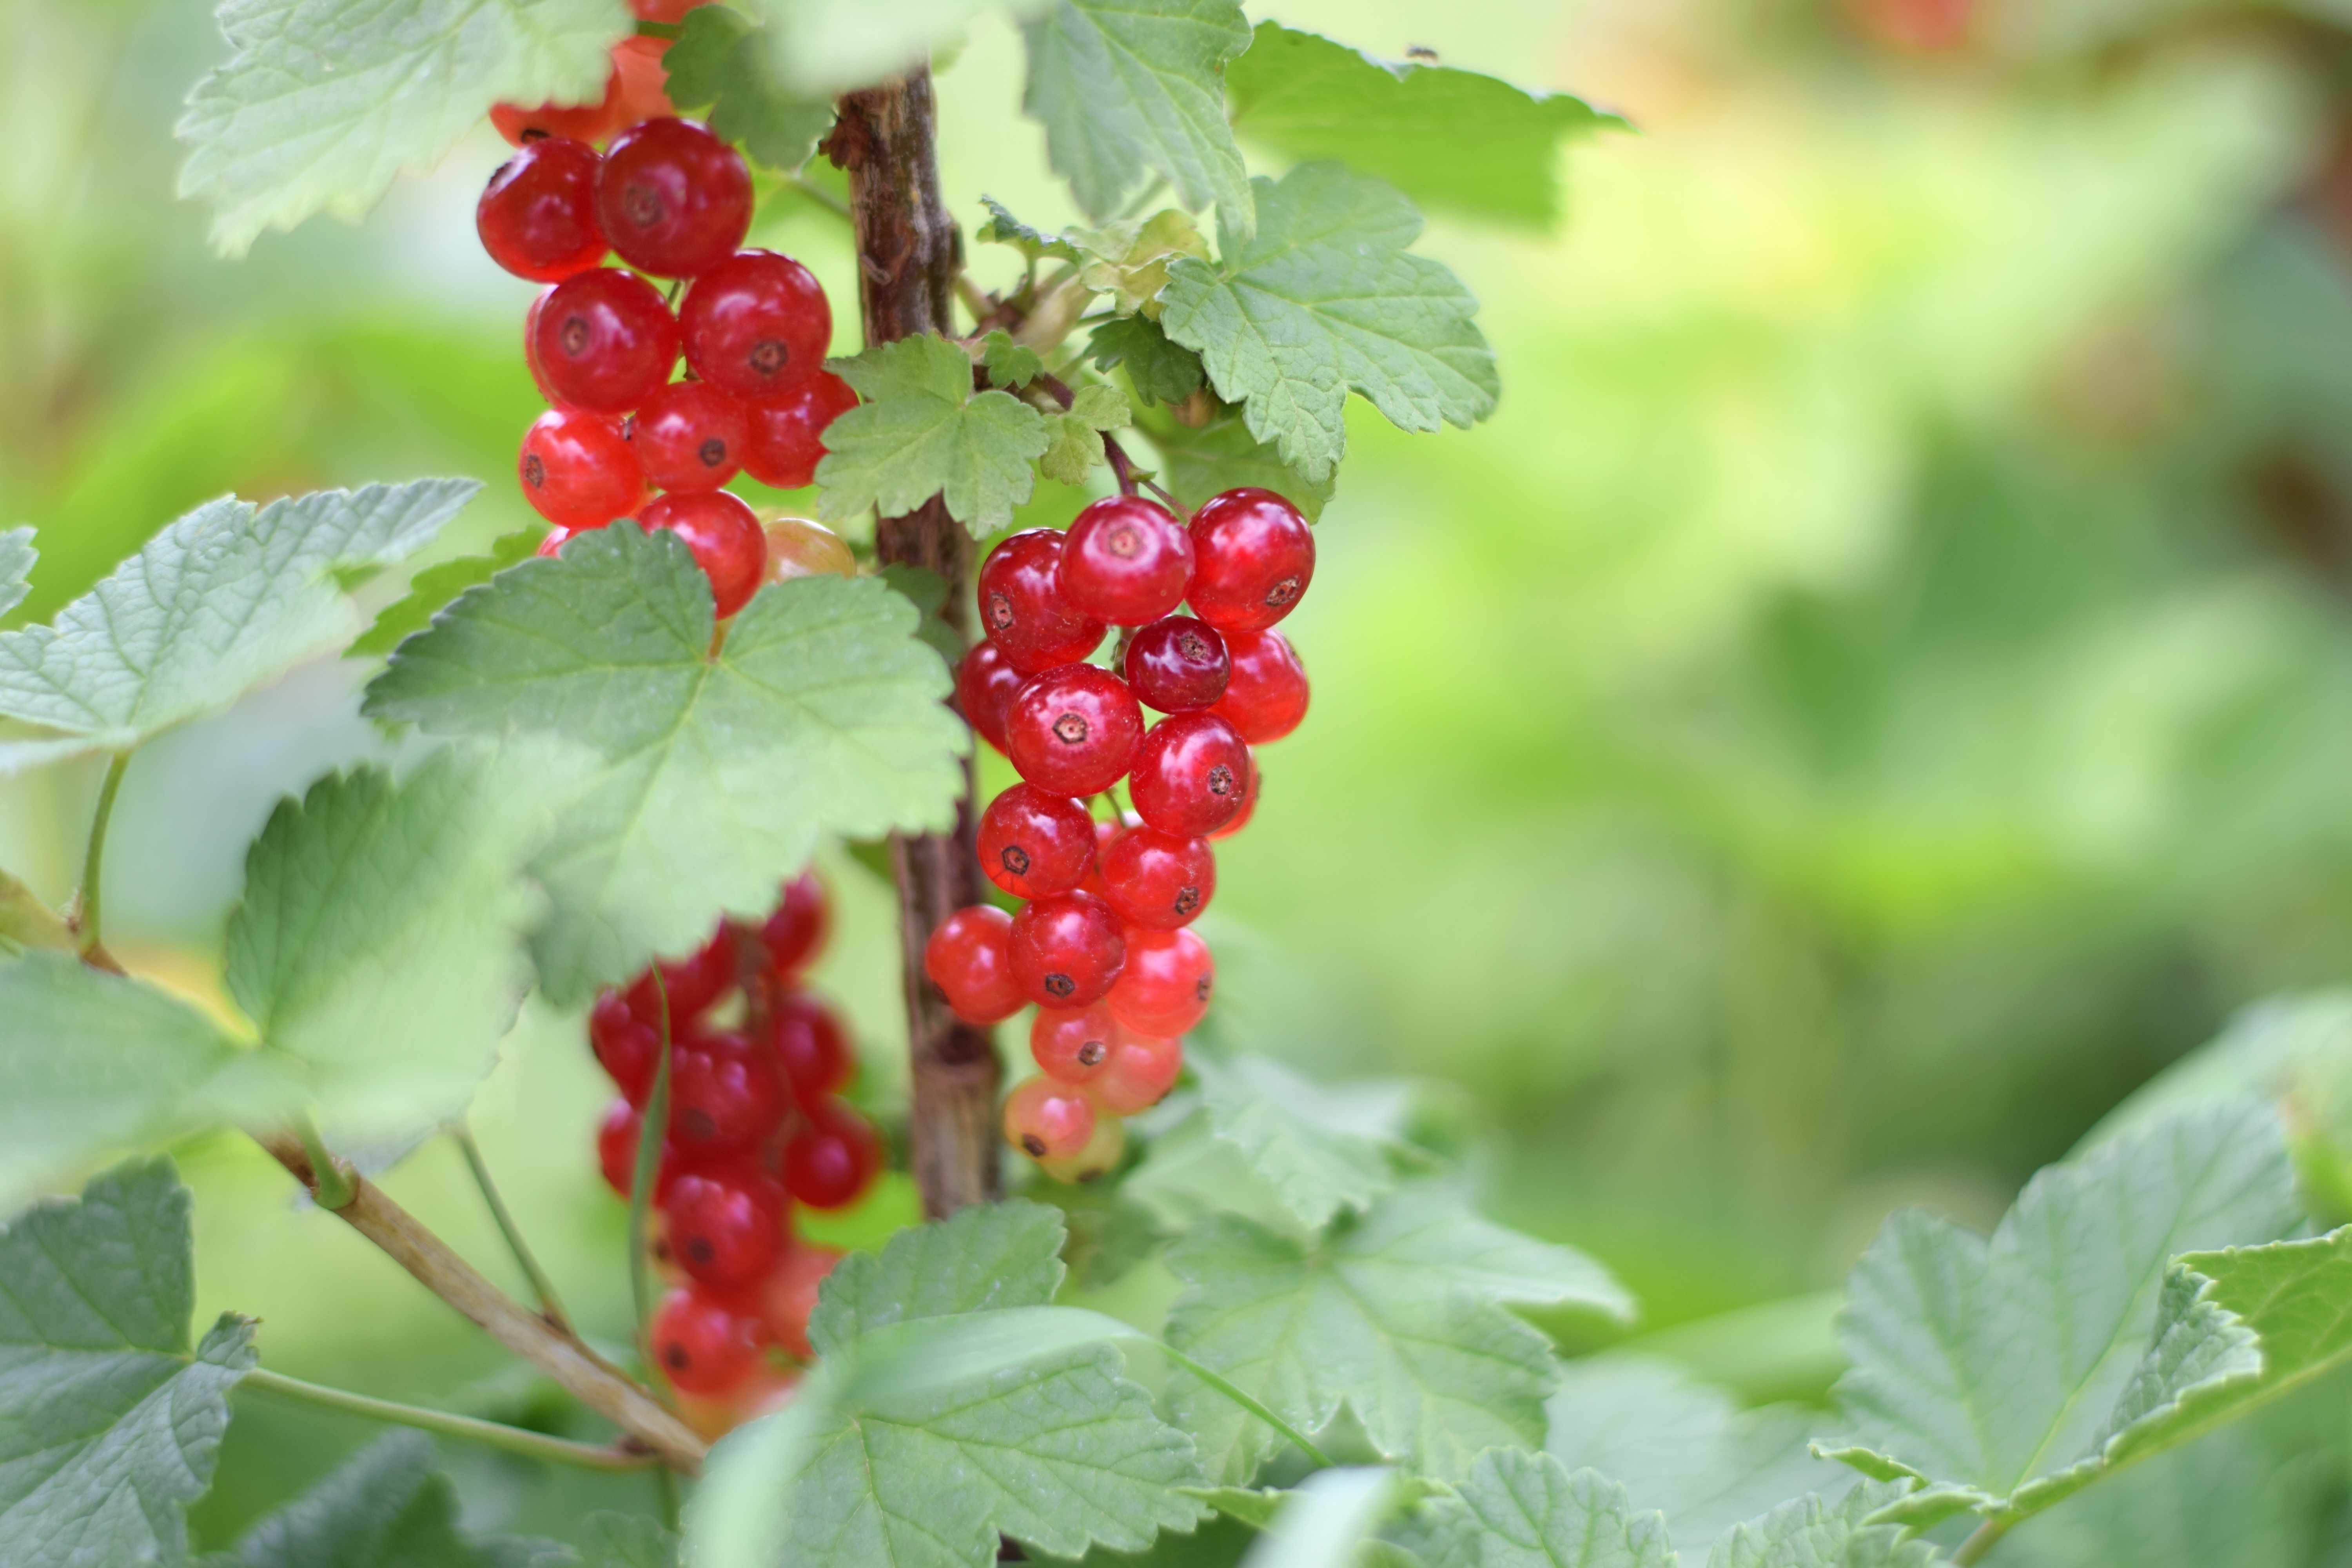 Close up of Clusters of Red Currants (Ribes rubrum) 'Jonkheer van Tets'